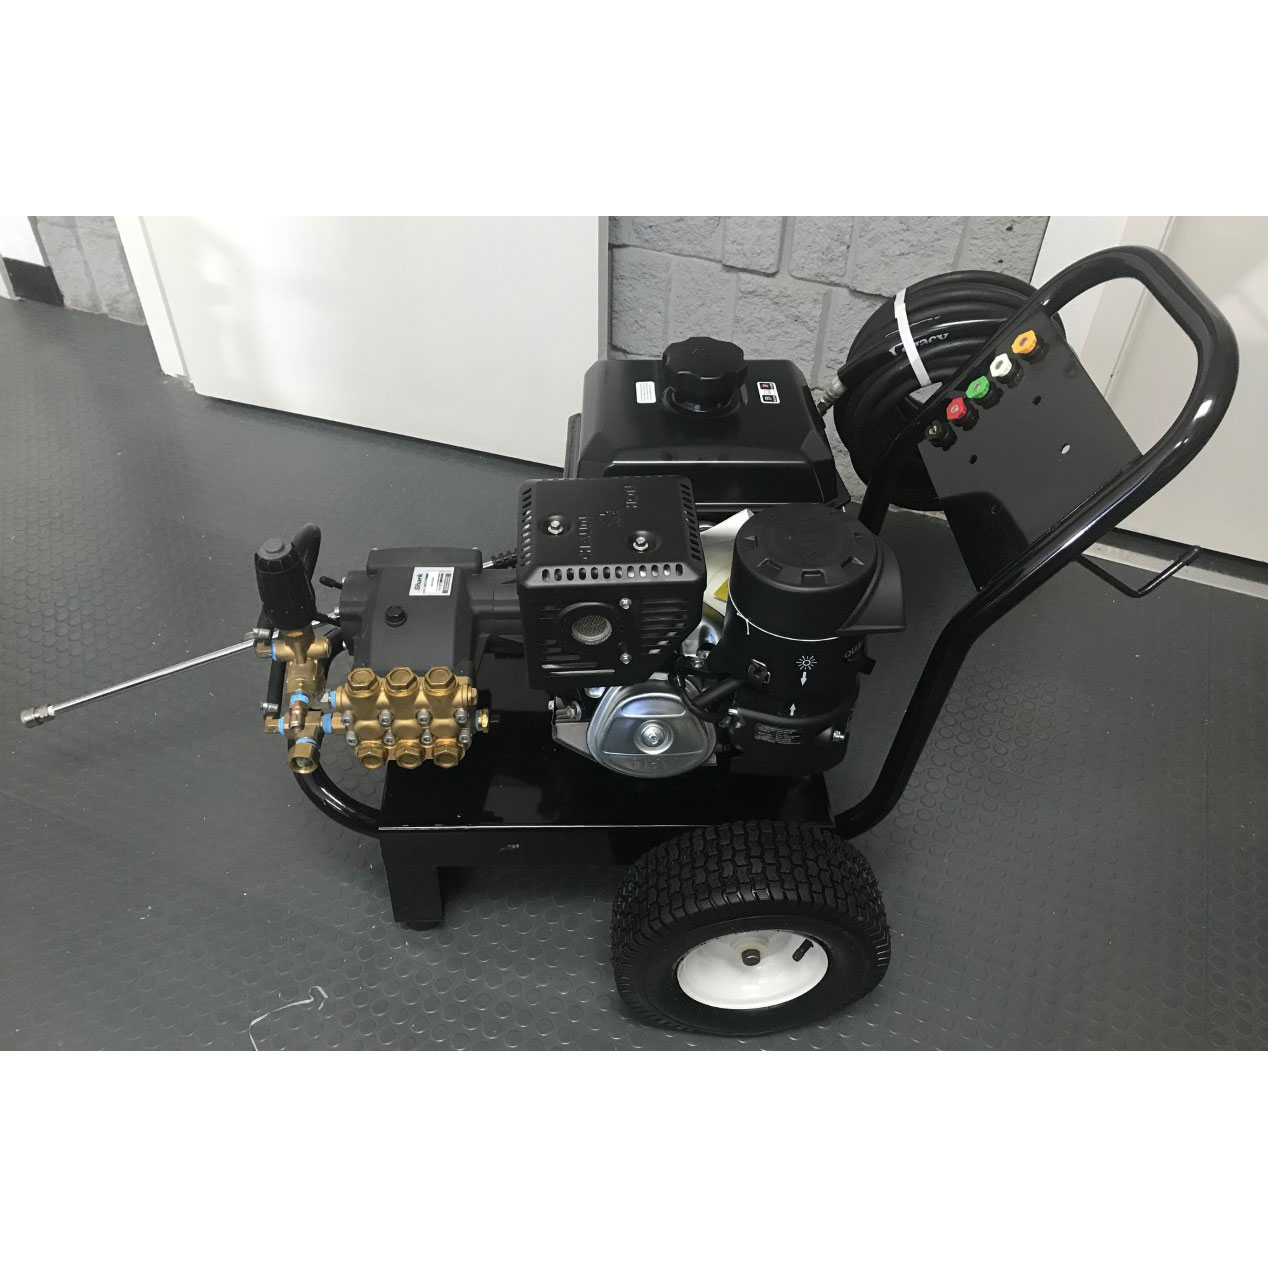 Clean Storm 4000 psi 4 Gpm 14Hp Kohler 440cc Karcher Pressure Washer Steel Cart with Hose And Nozzles 20210210